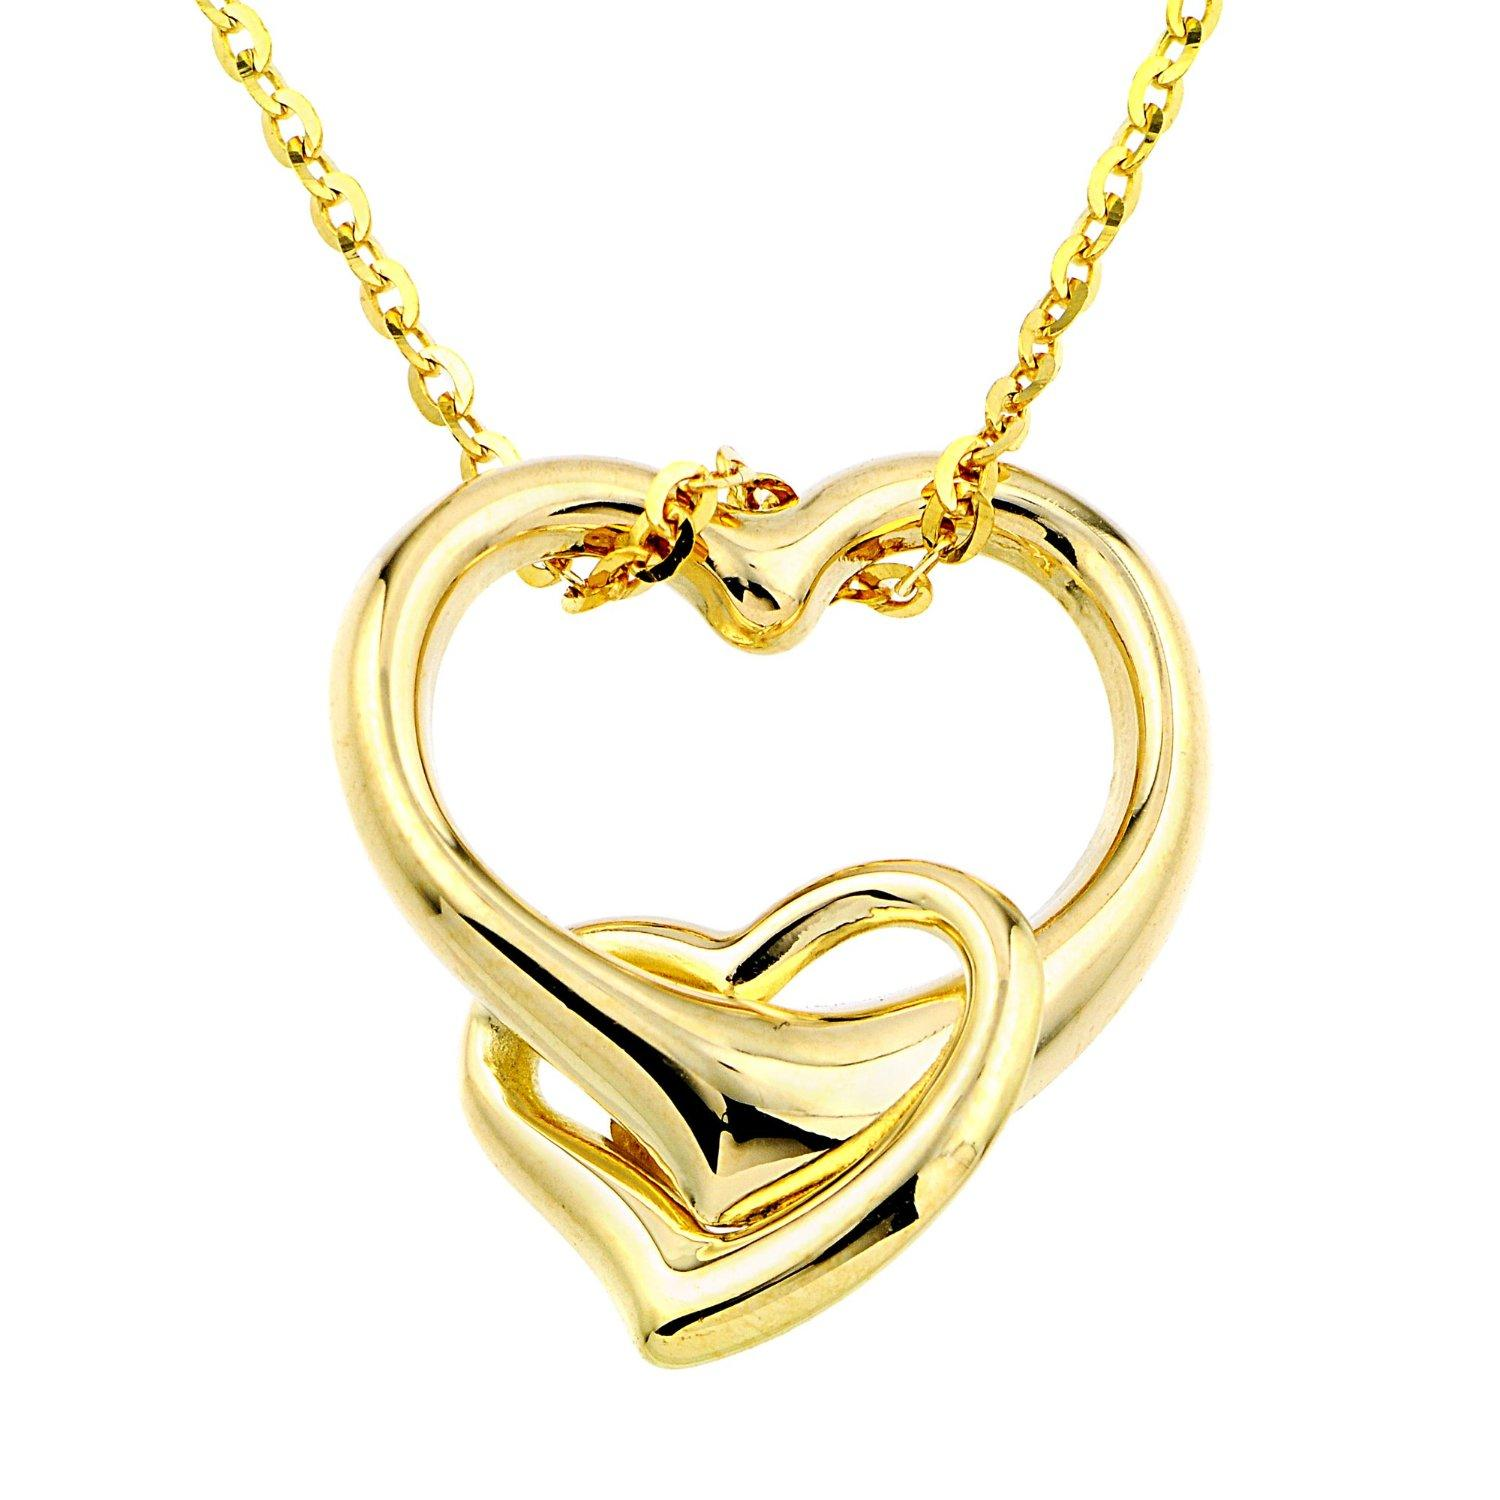 Amazon.com: 14k Yellow Gold Double Heart Pendant Necklace